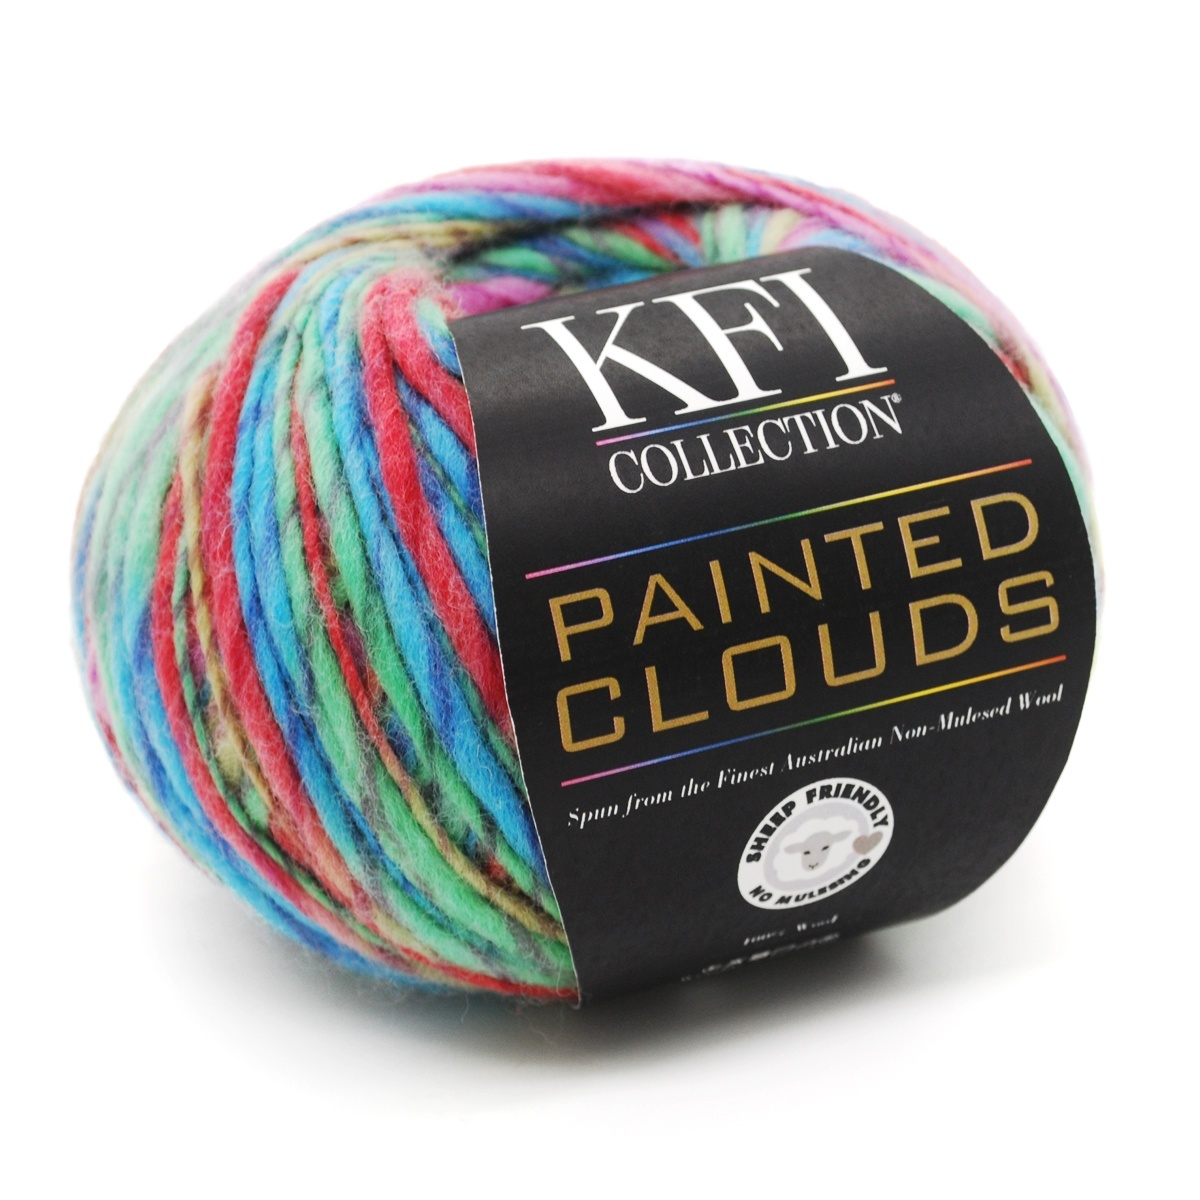 KFI Collection Painted Clouds